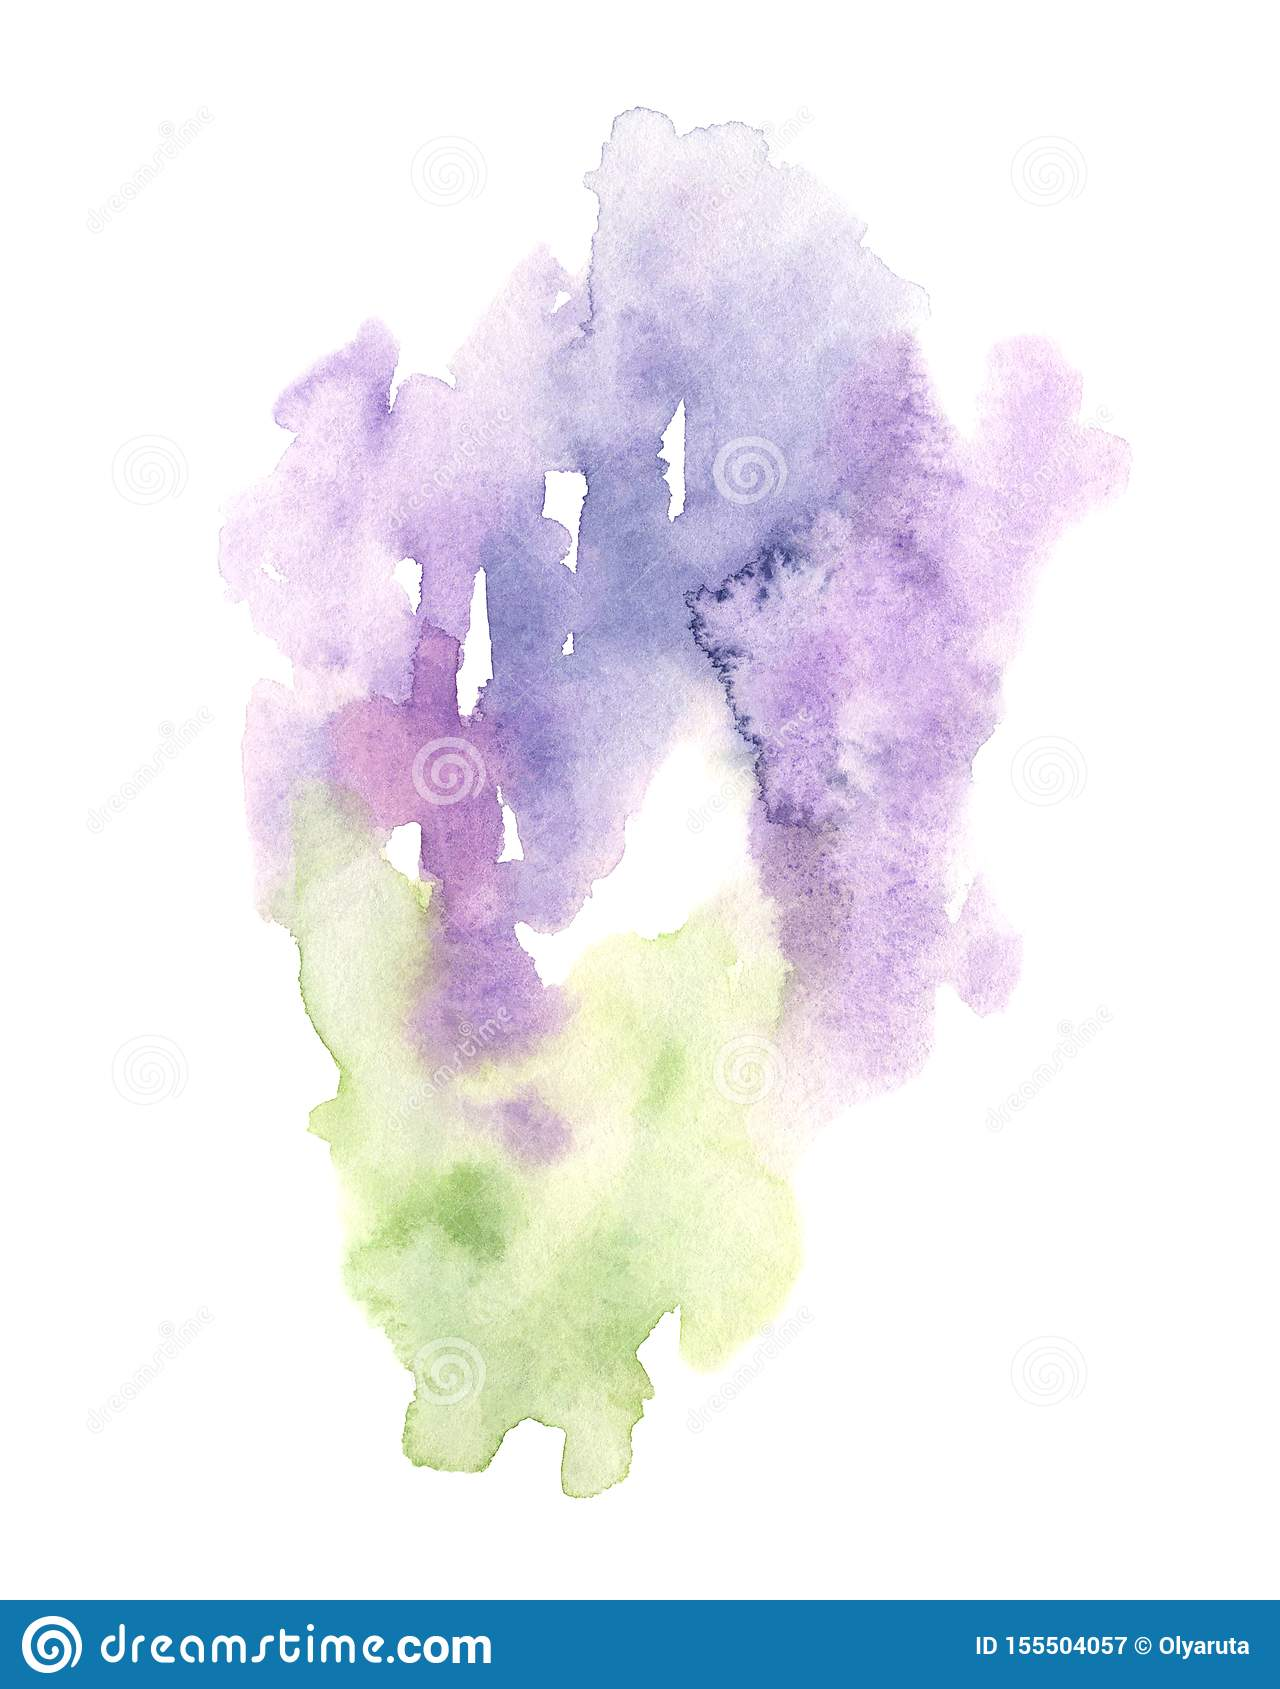 Watercolor abstract background in lavender colors